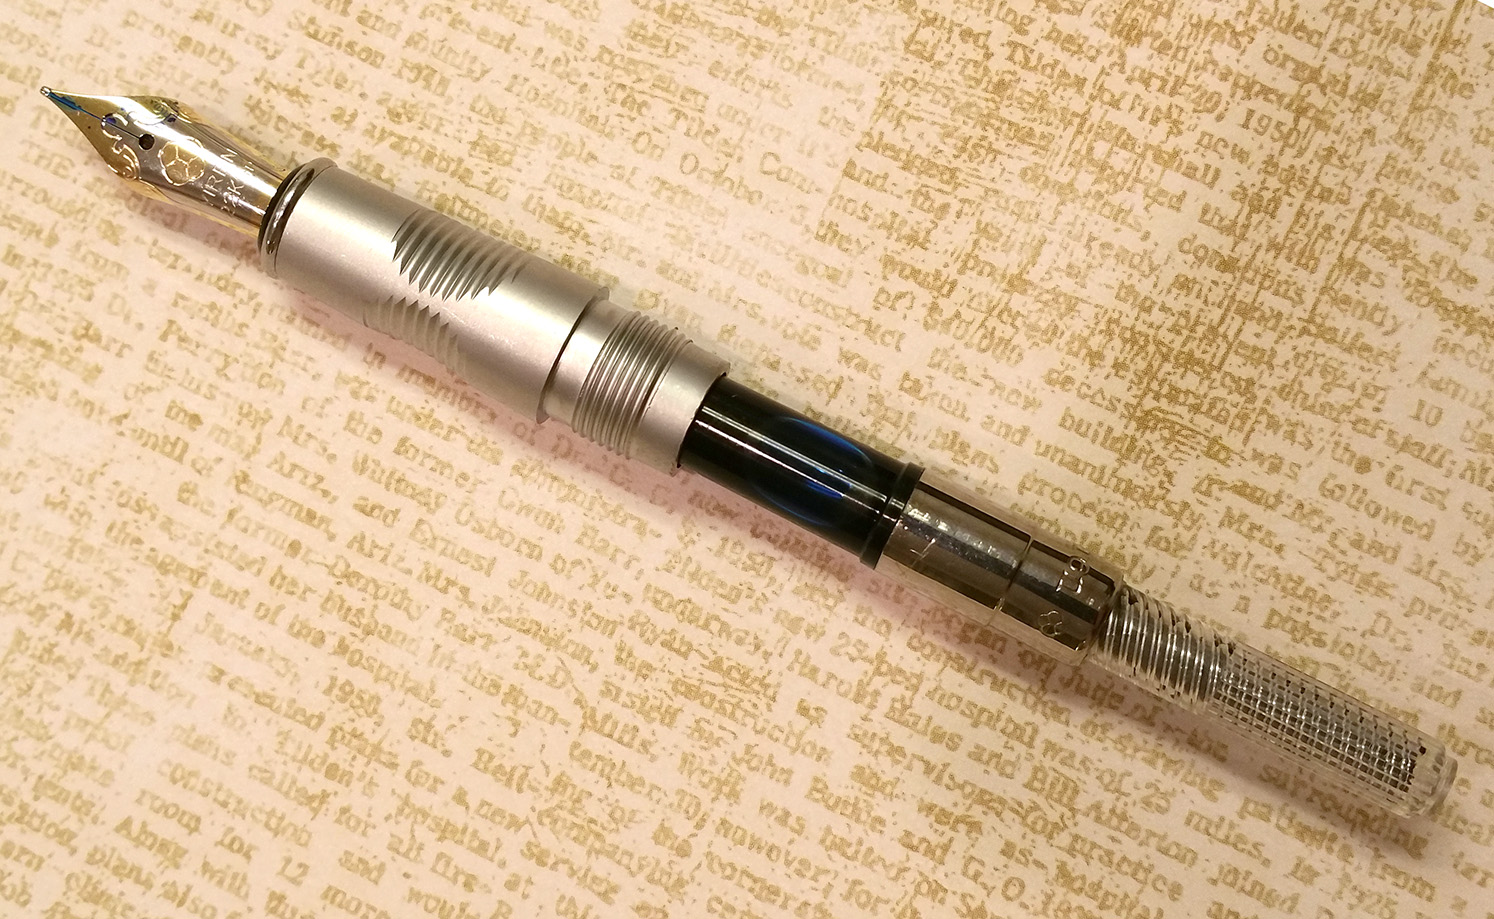 Yiren 823 Fountain Pen